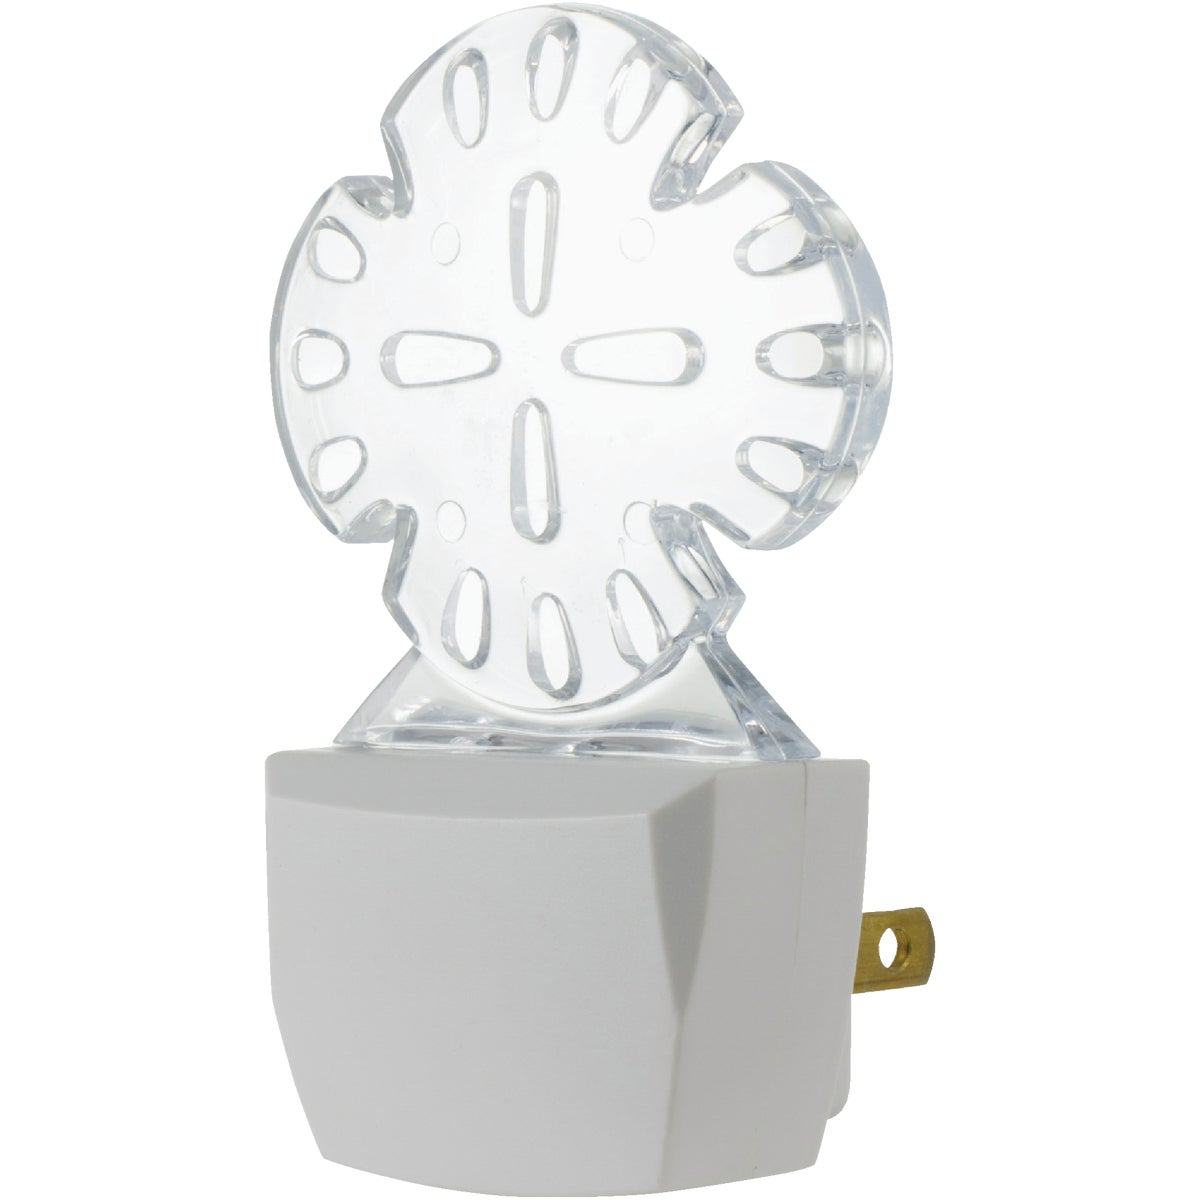 GREEN LED NIGHT LIGHT - 10932 by Jasco Products Co